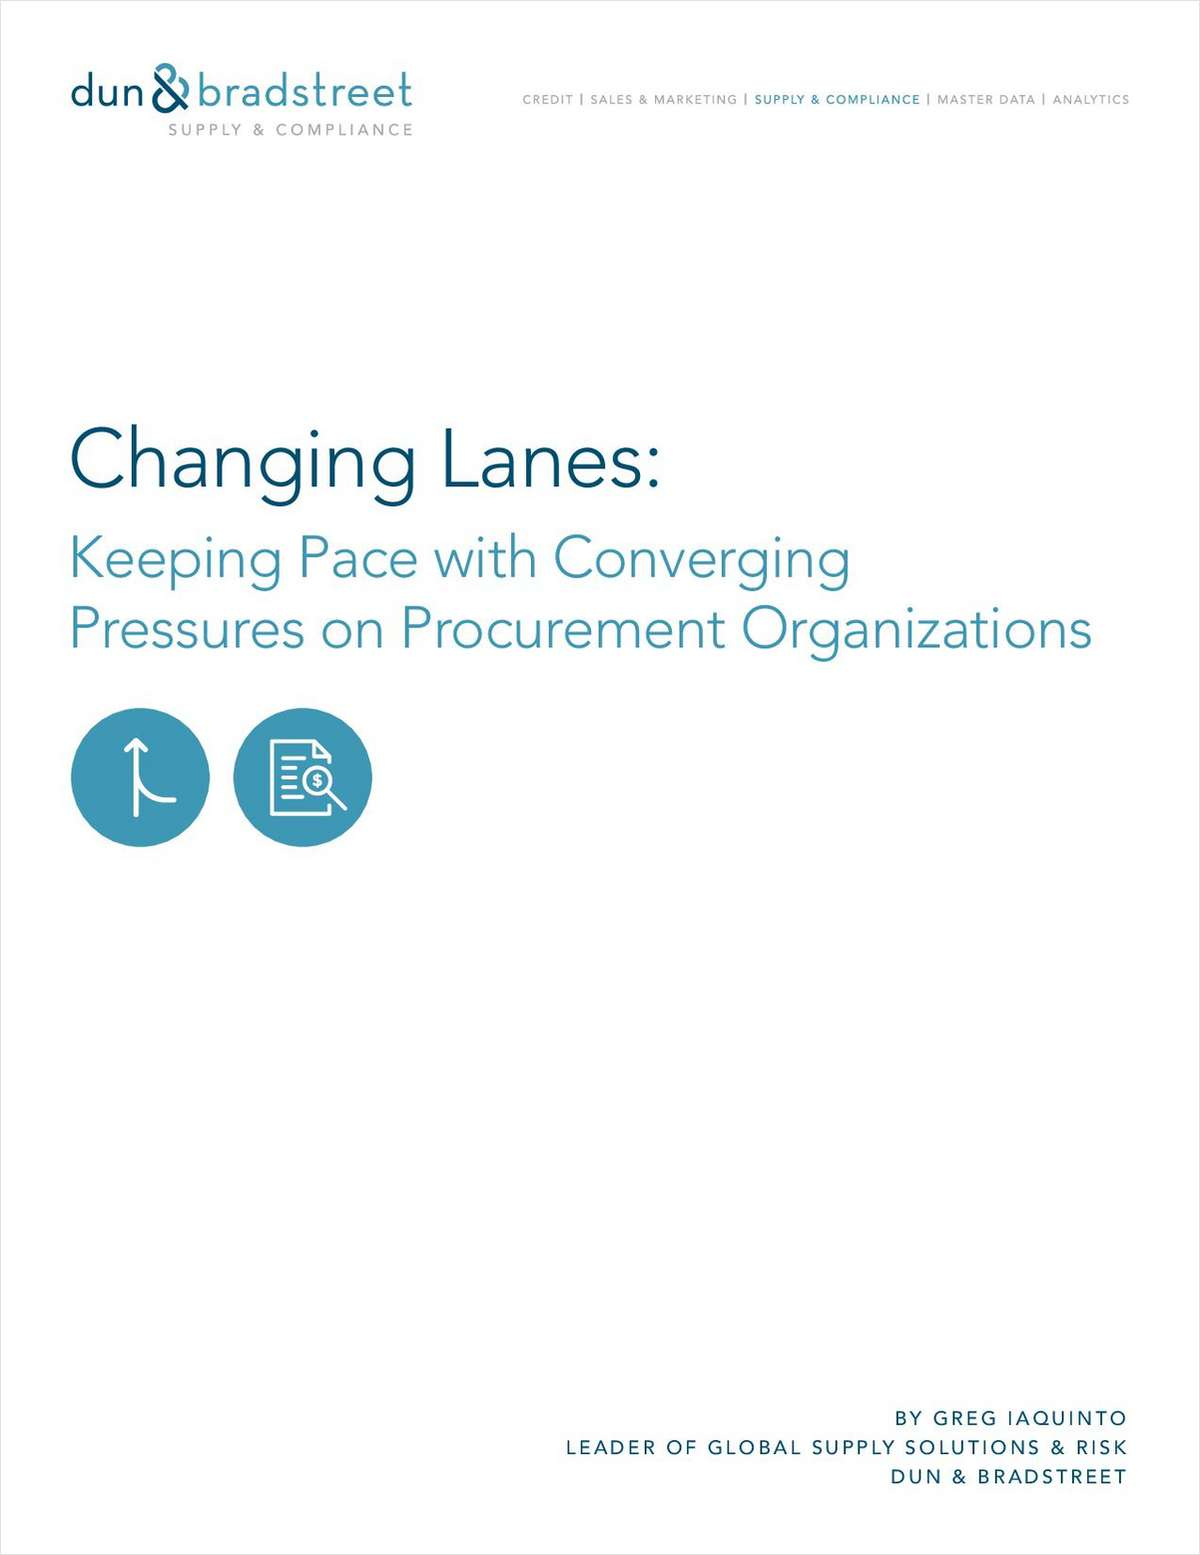 Changing Lanes: Keeping Pace with Converging Pressures on Procurement Organizations